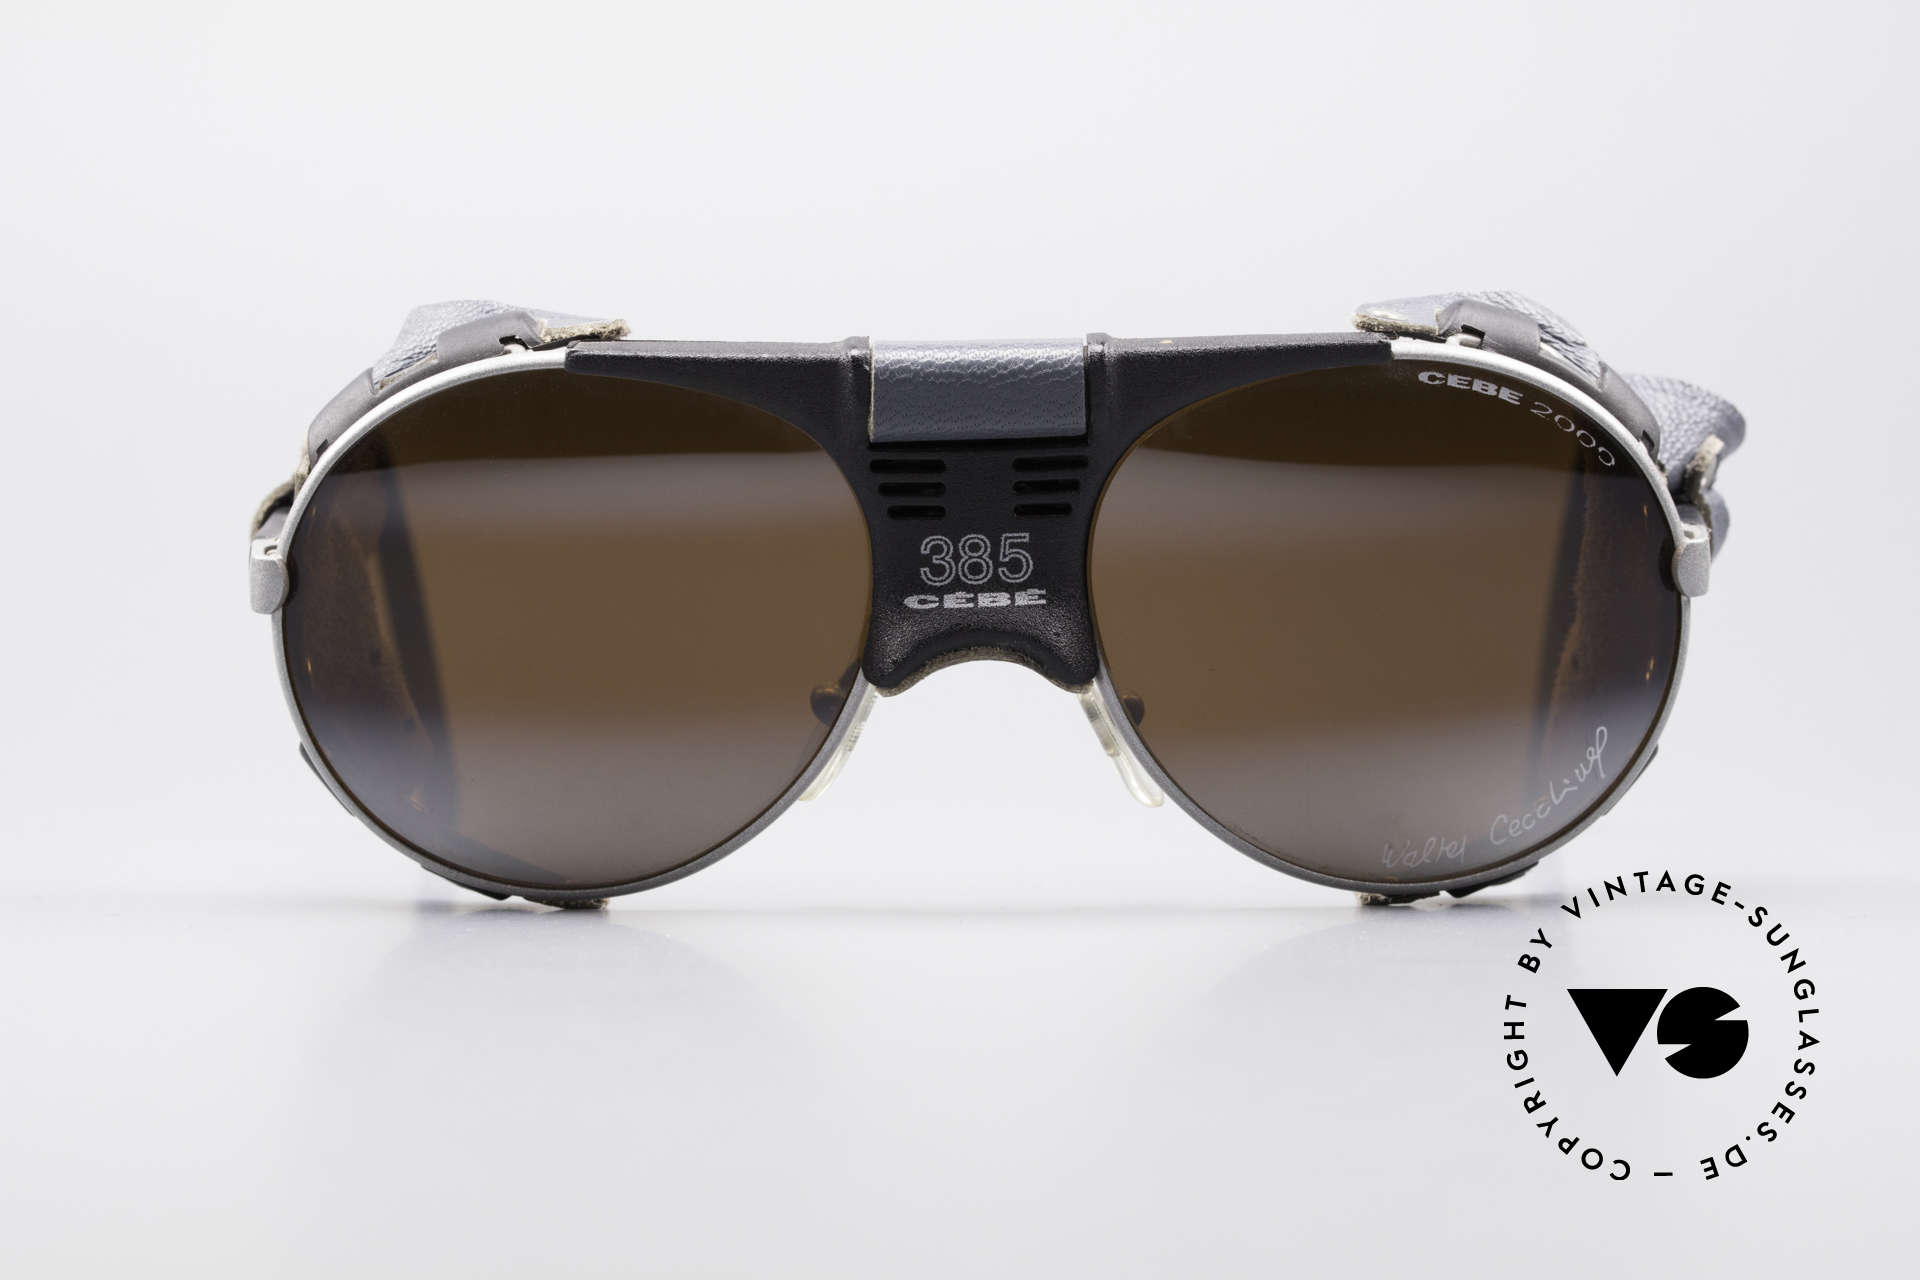 Cebe 385 Walter Cecchinel Sunglasses, engineered for the French alpinist Mr. Walter Cecchinel, Made for Men and Women